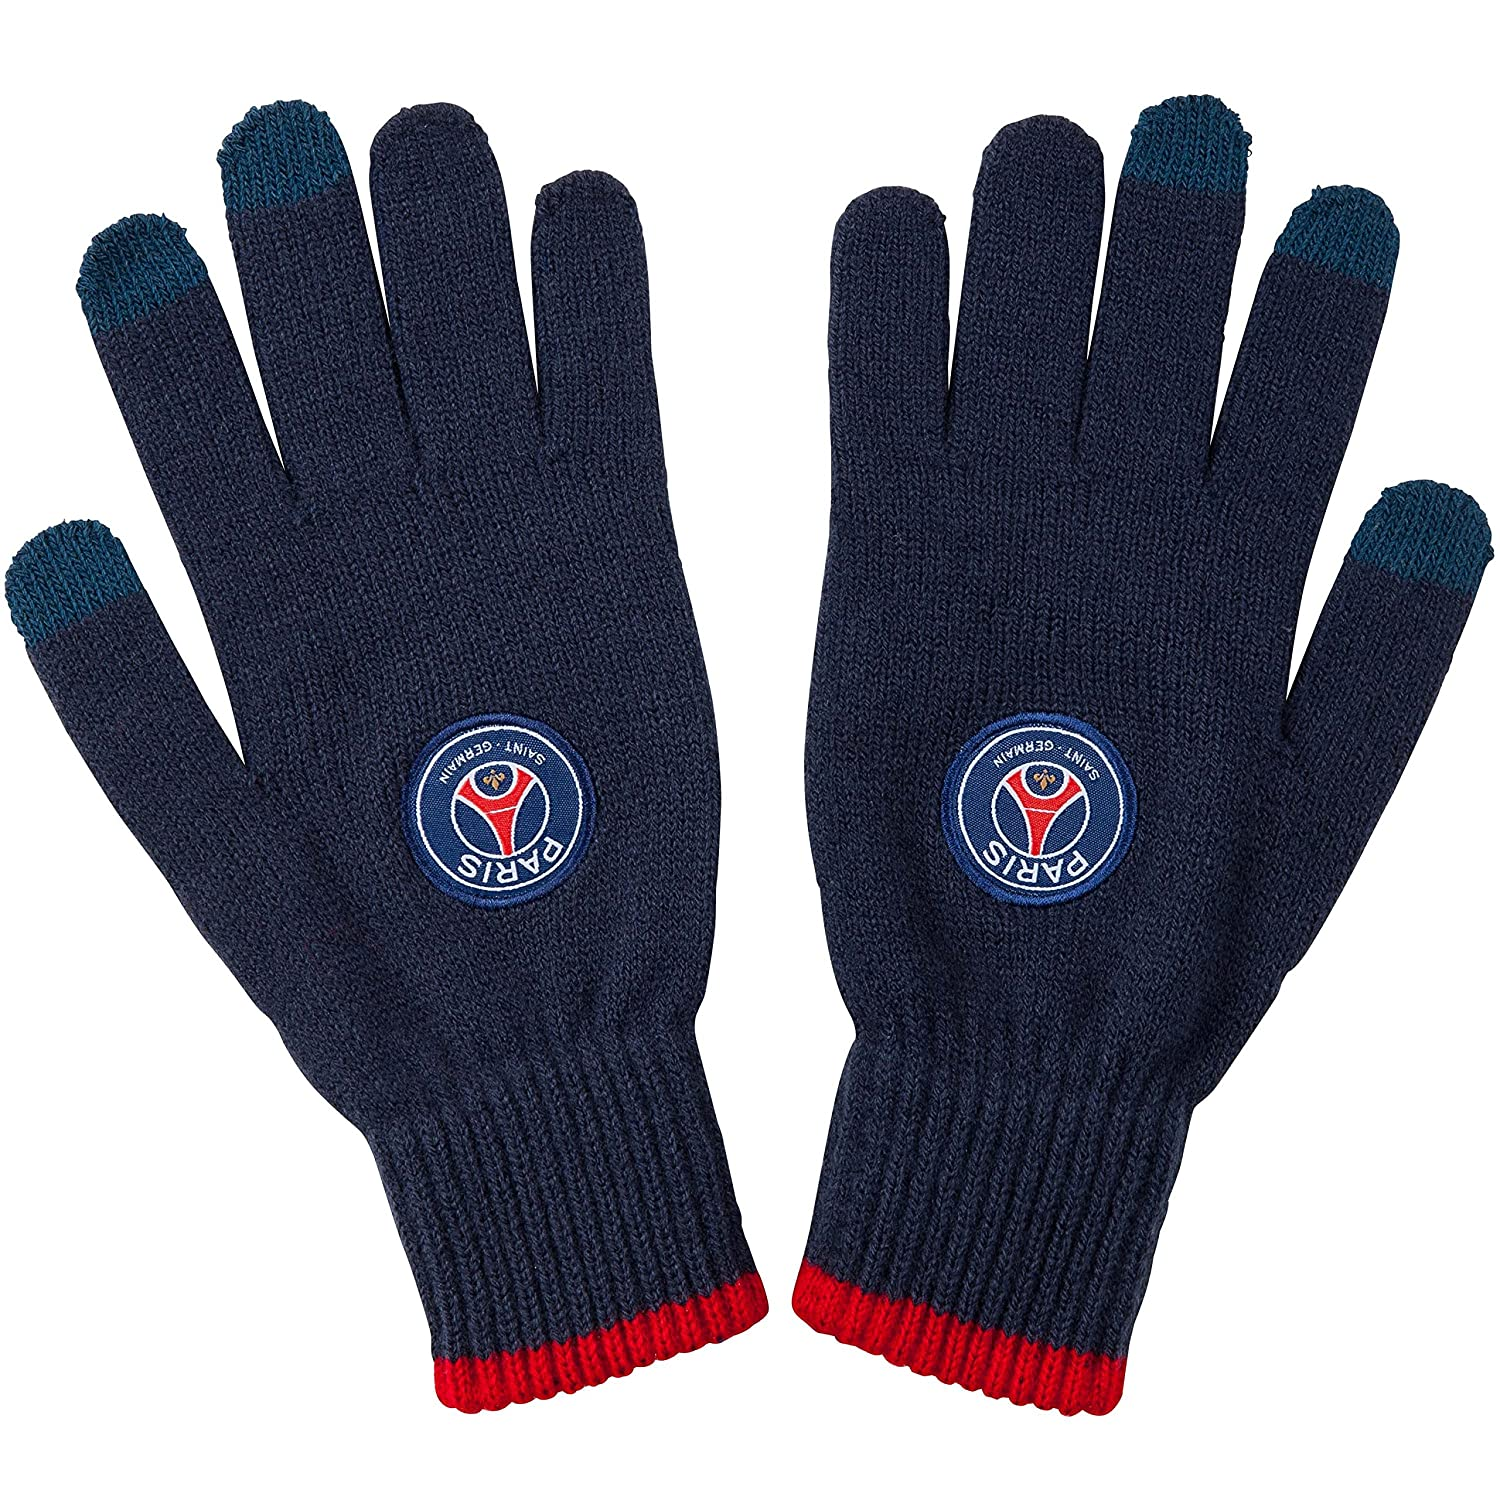 e15d3d4a5d0 PARIS SAINT GERMAIN Gants PSG - Collection officielle Taille adulte homme   Amazon.fr  Sports et Loisirs